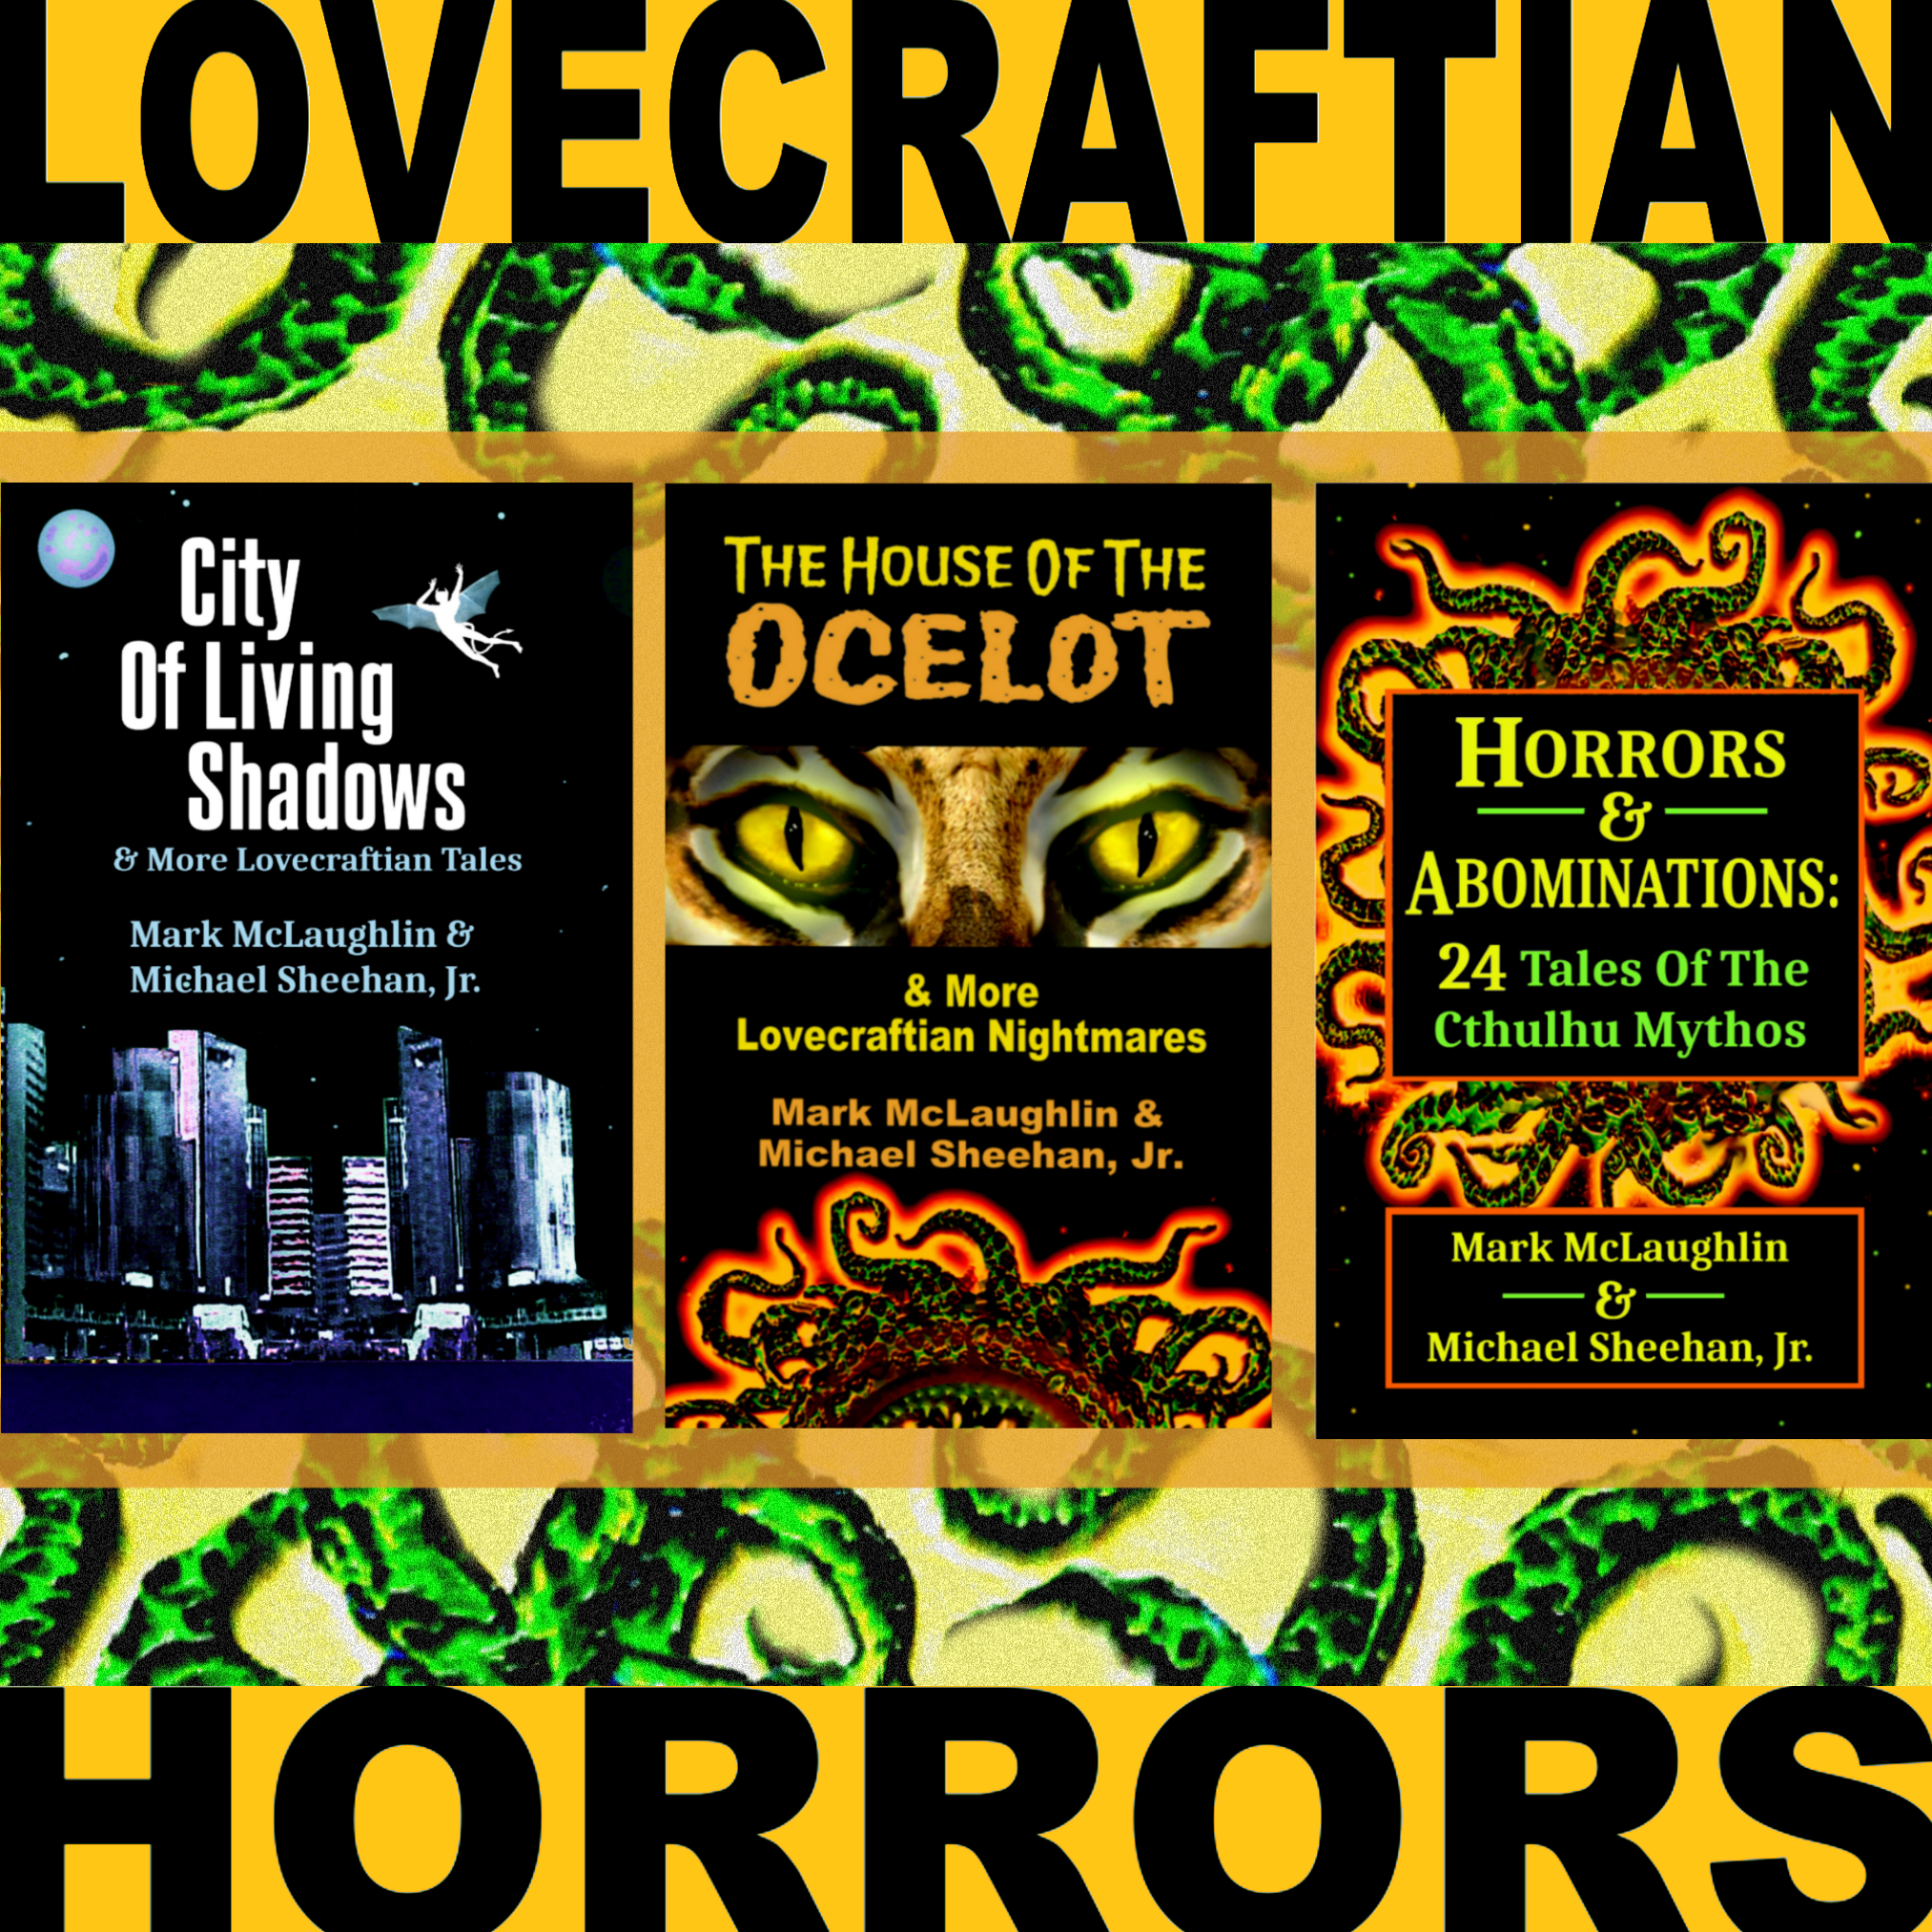 3-Lovecraft-Covers-Ad2